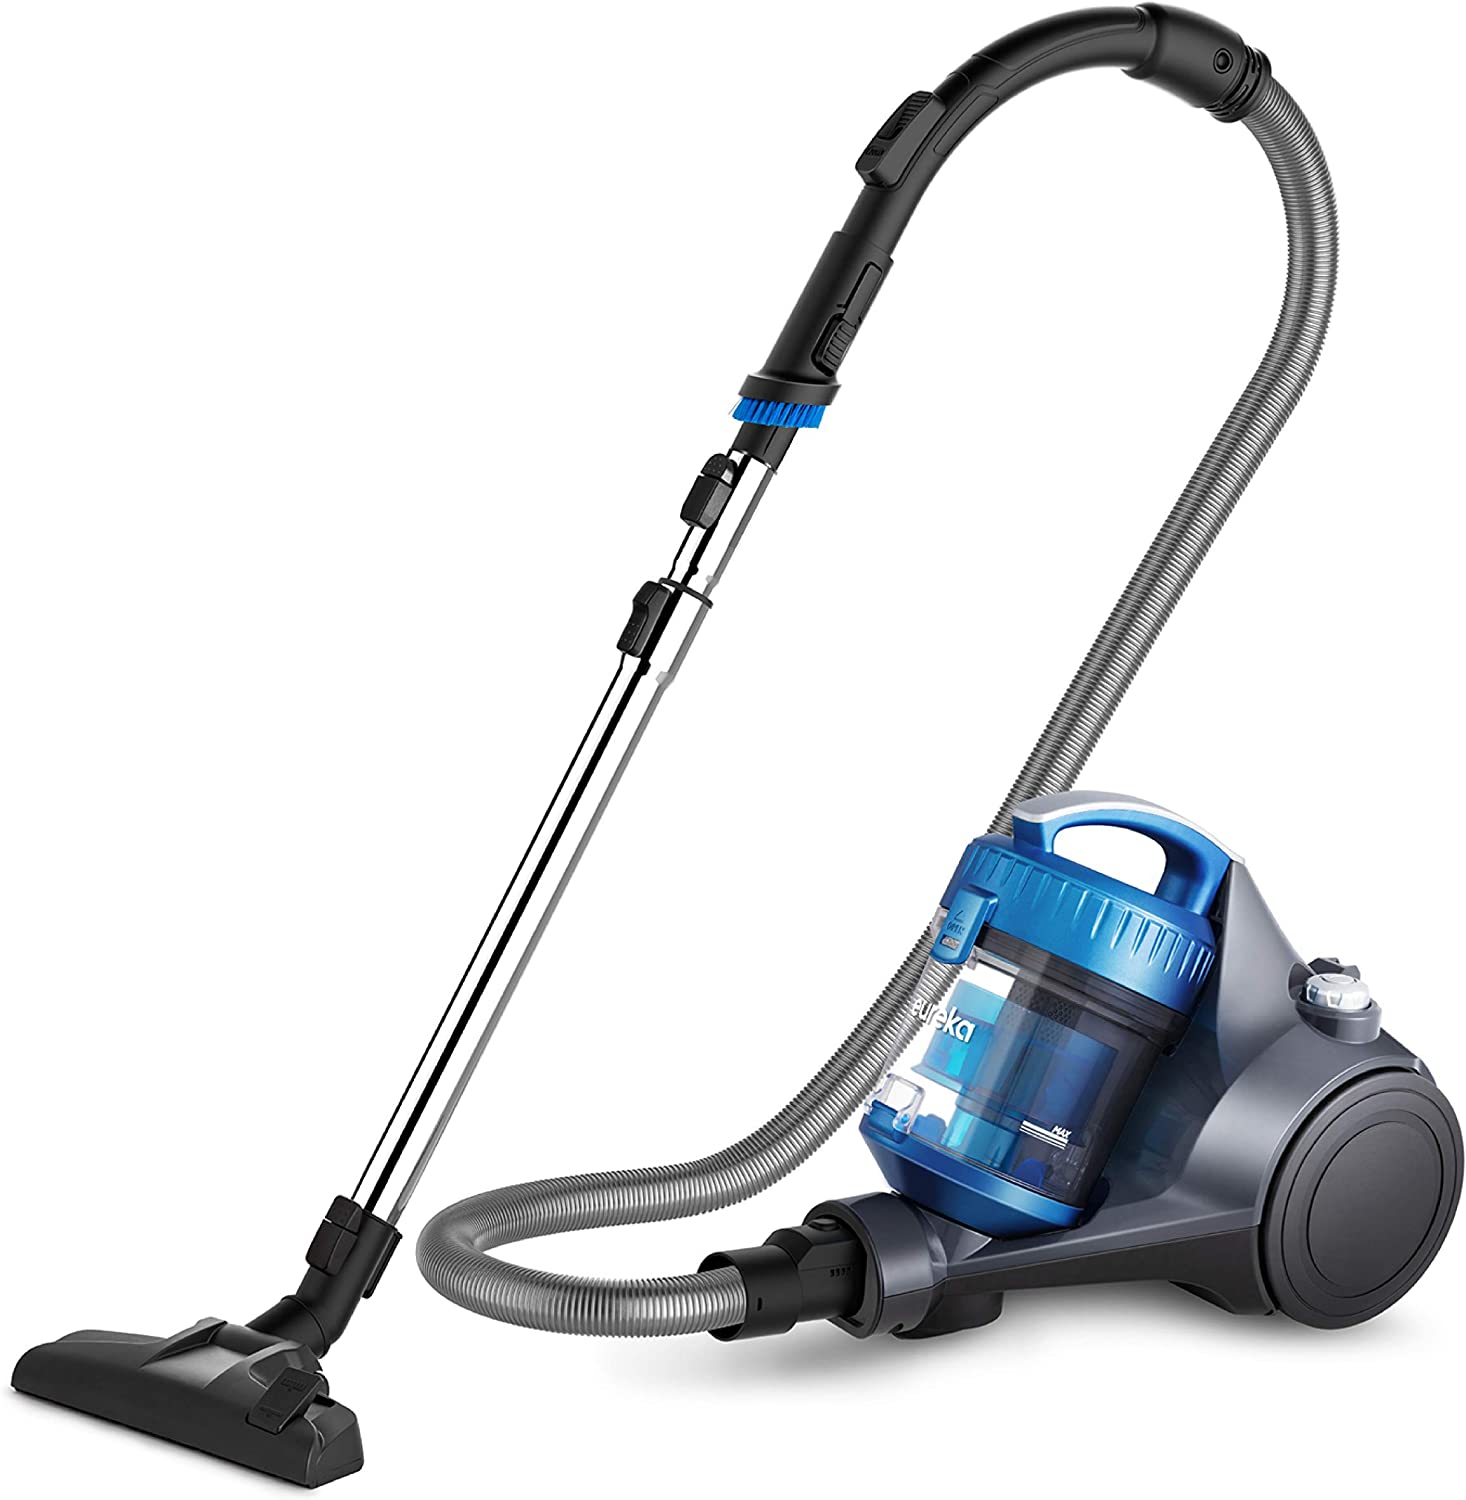 Eureka WhirlWind Bagless Canister Cleaner NEN110A Lightweight Corded Vacuum for Carpets